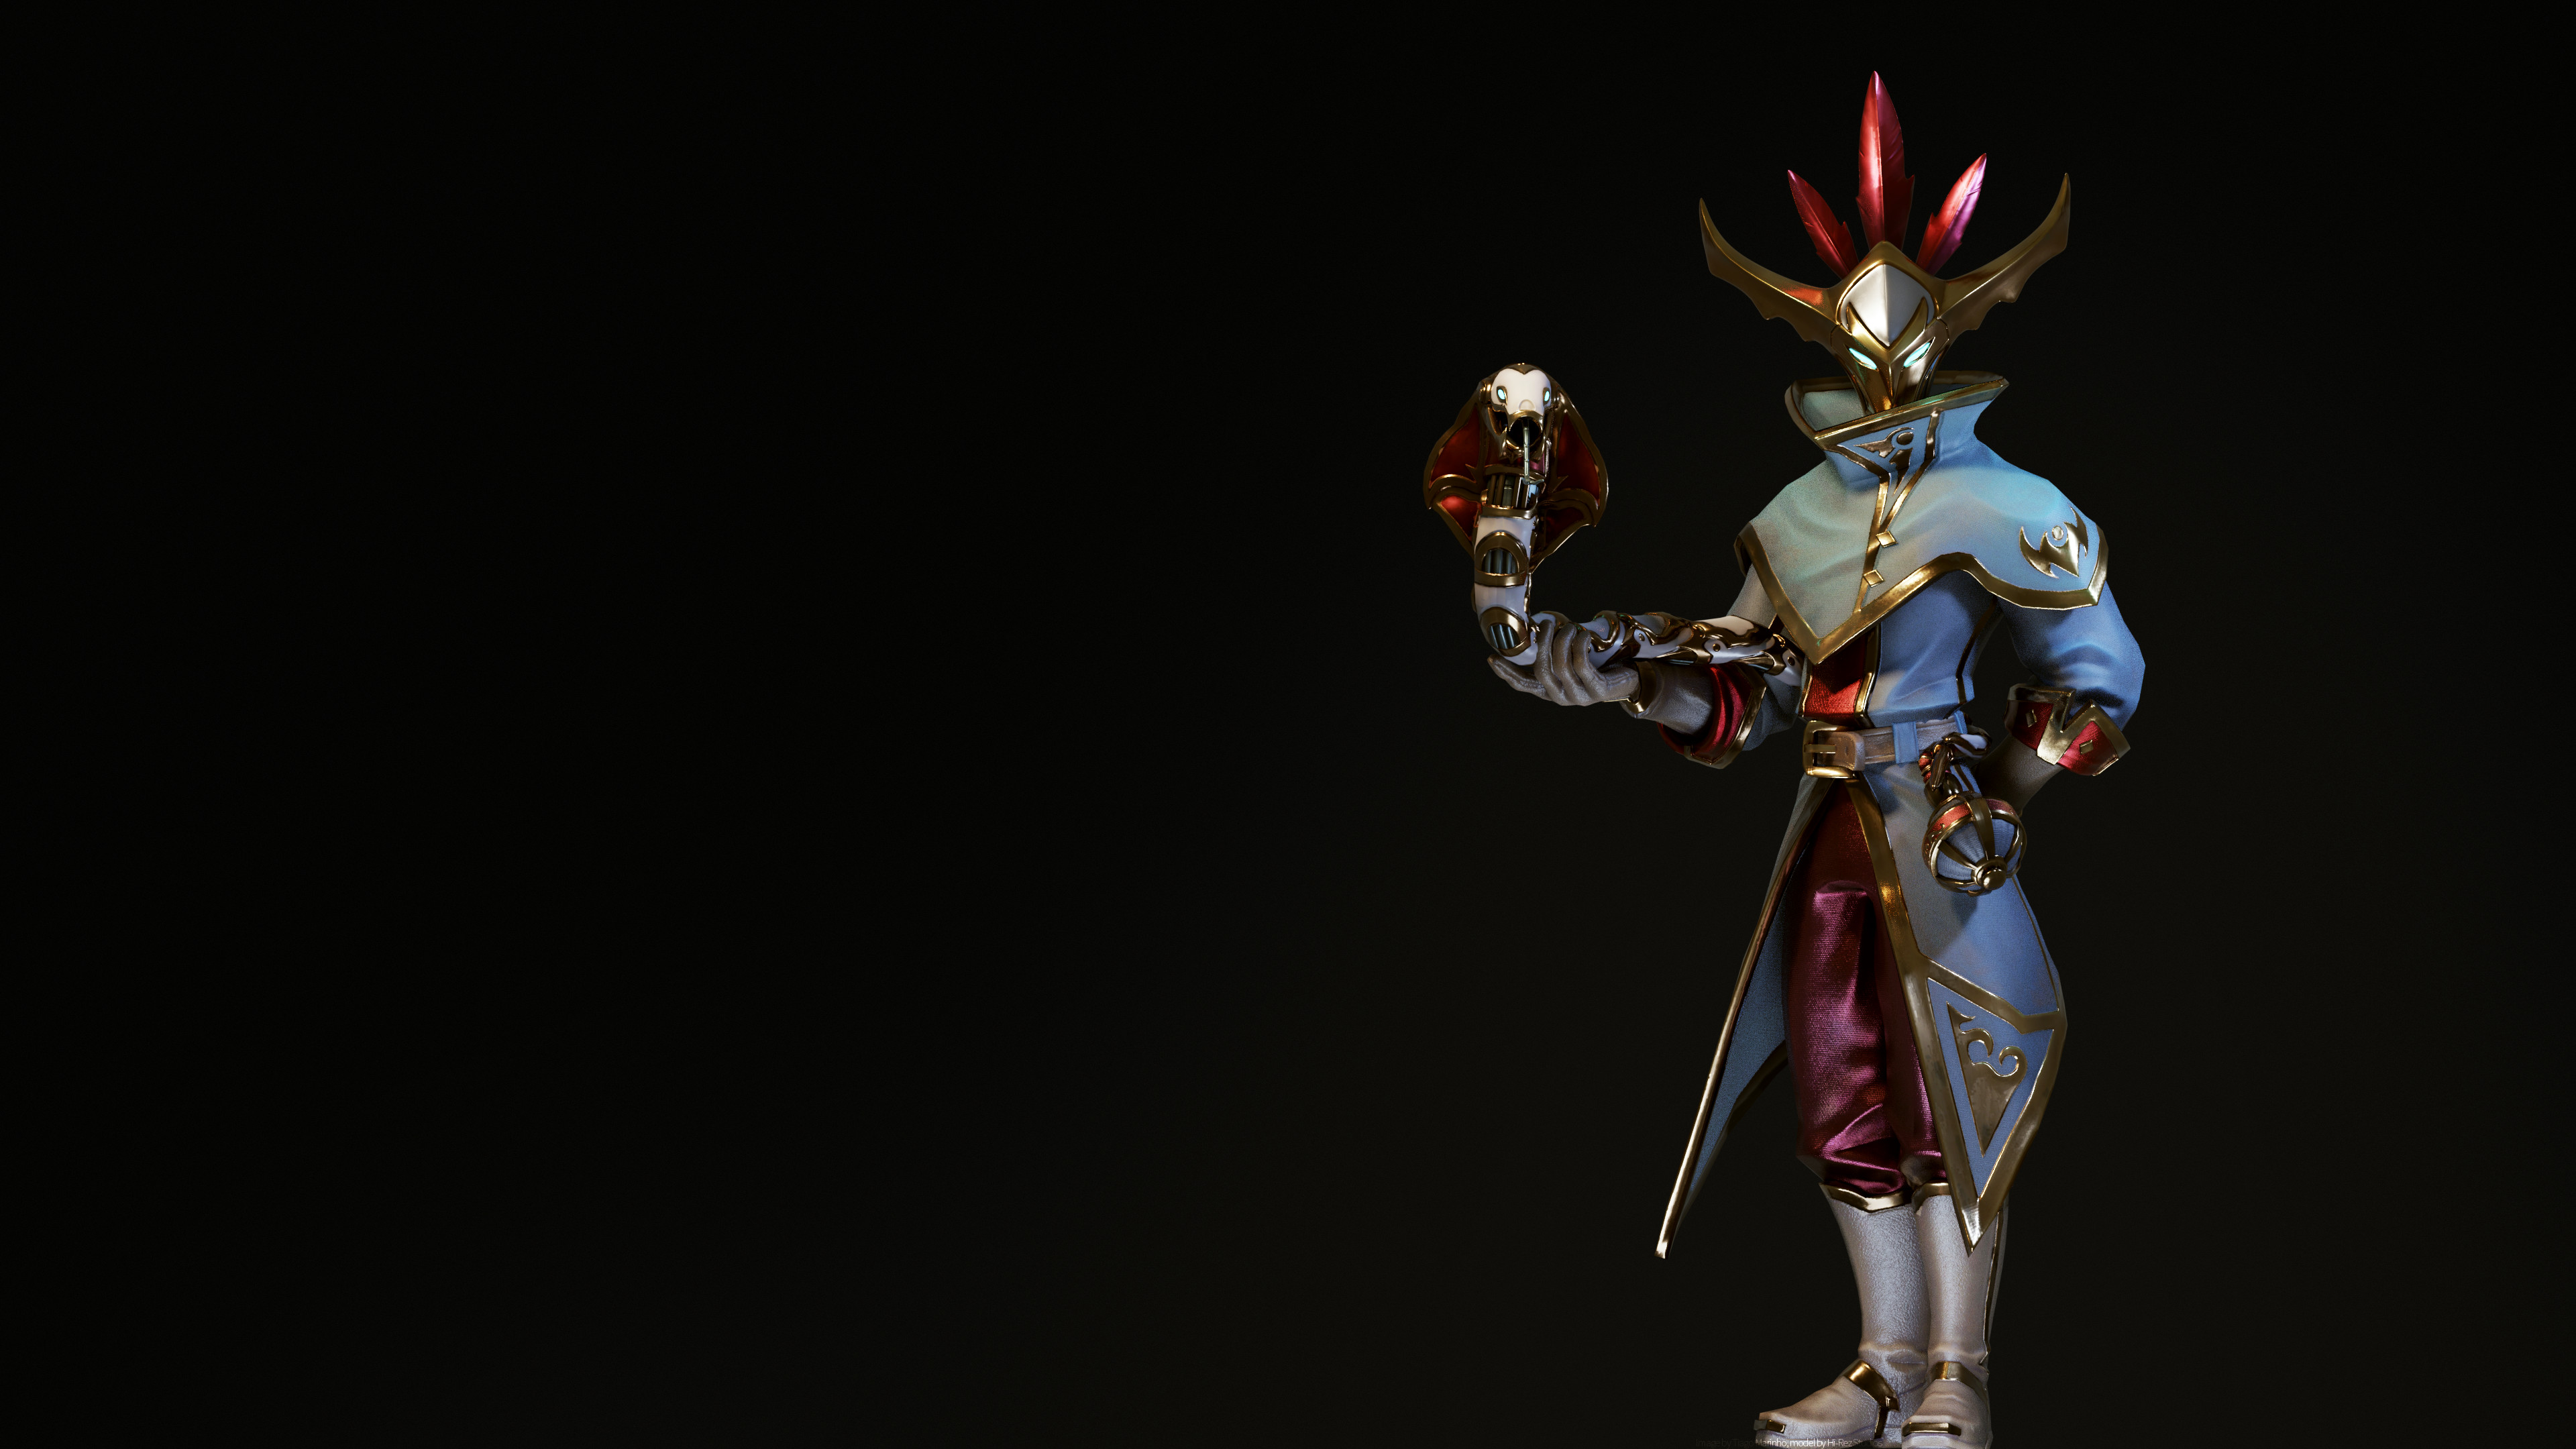 3840x2160 ARTMal'Damba Ray-Traced 4K Wallpaper ...